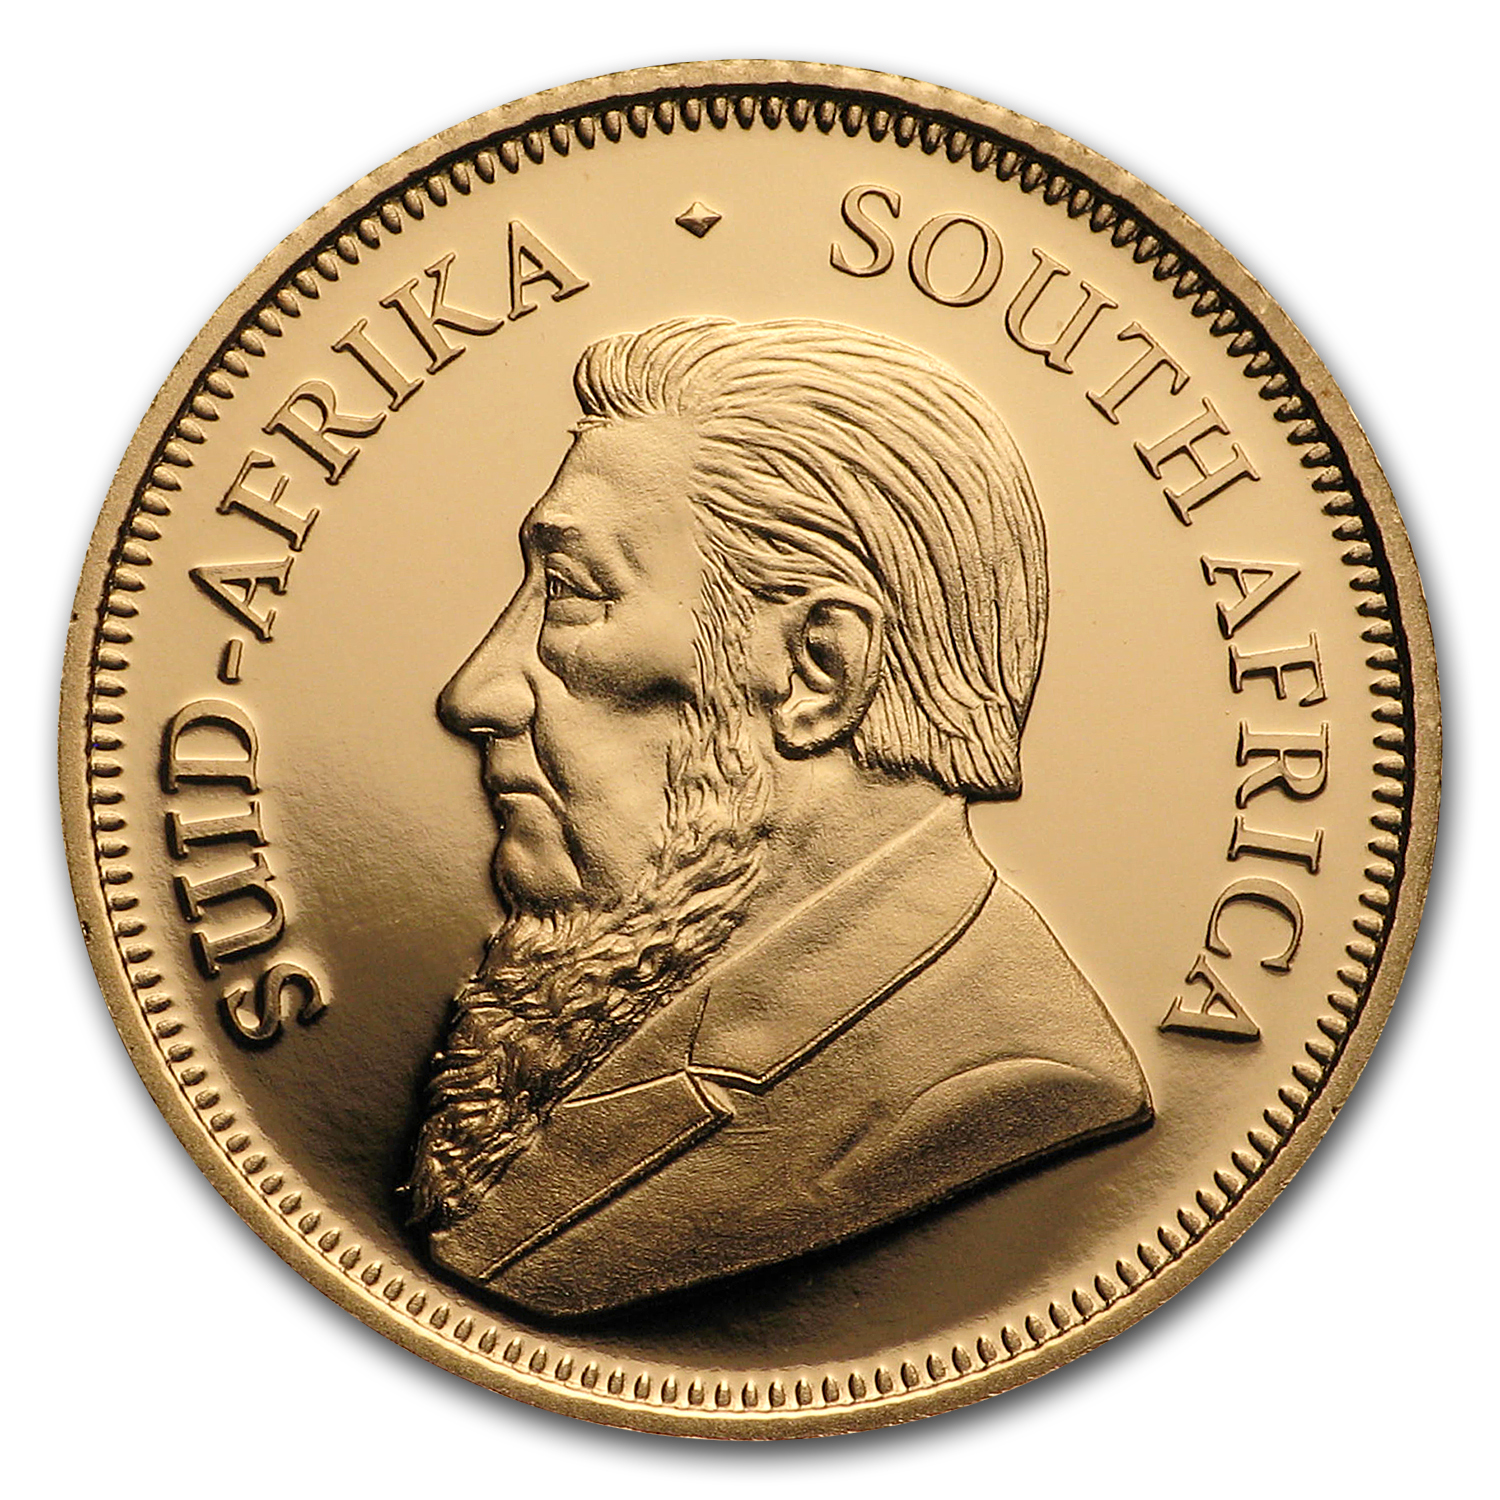 2017 South Africa 1/10 oz Proof Gold Krugerrand